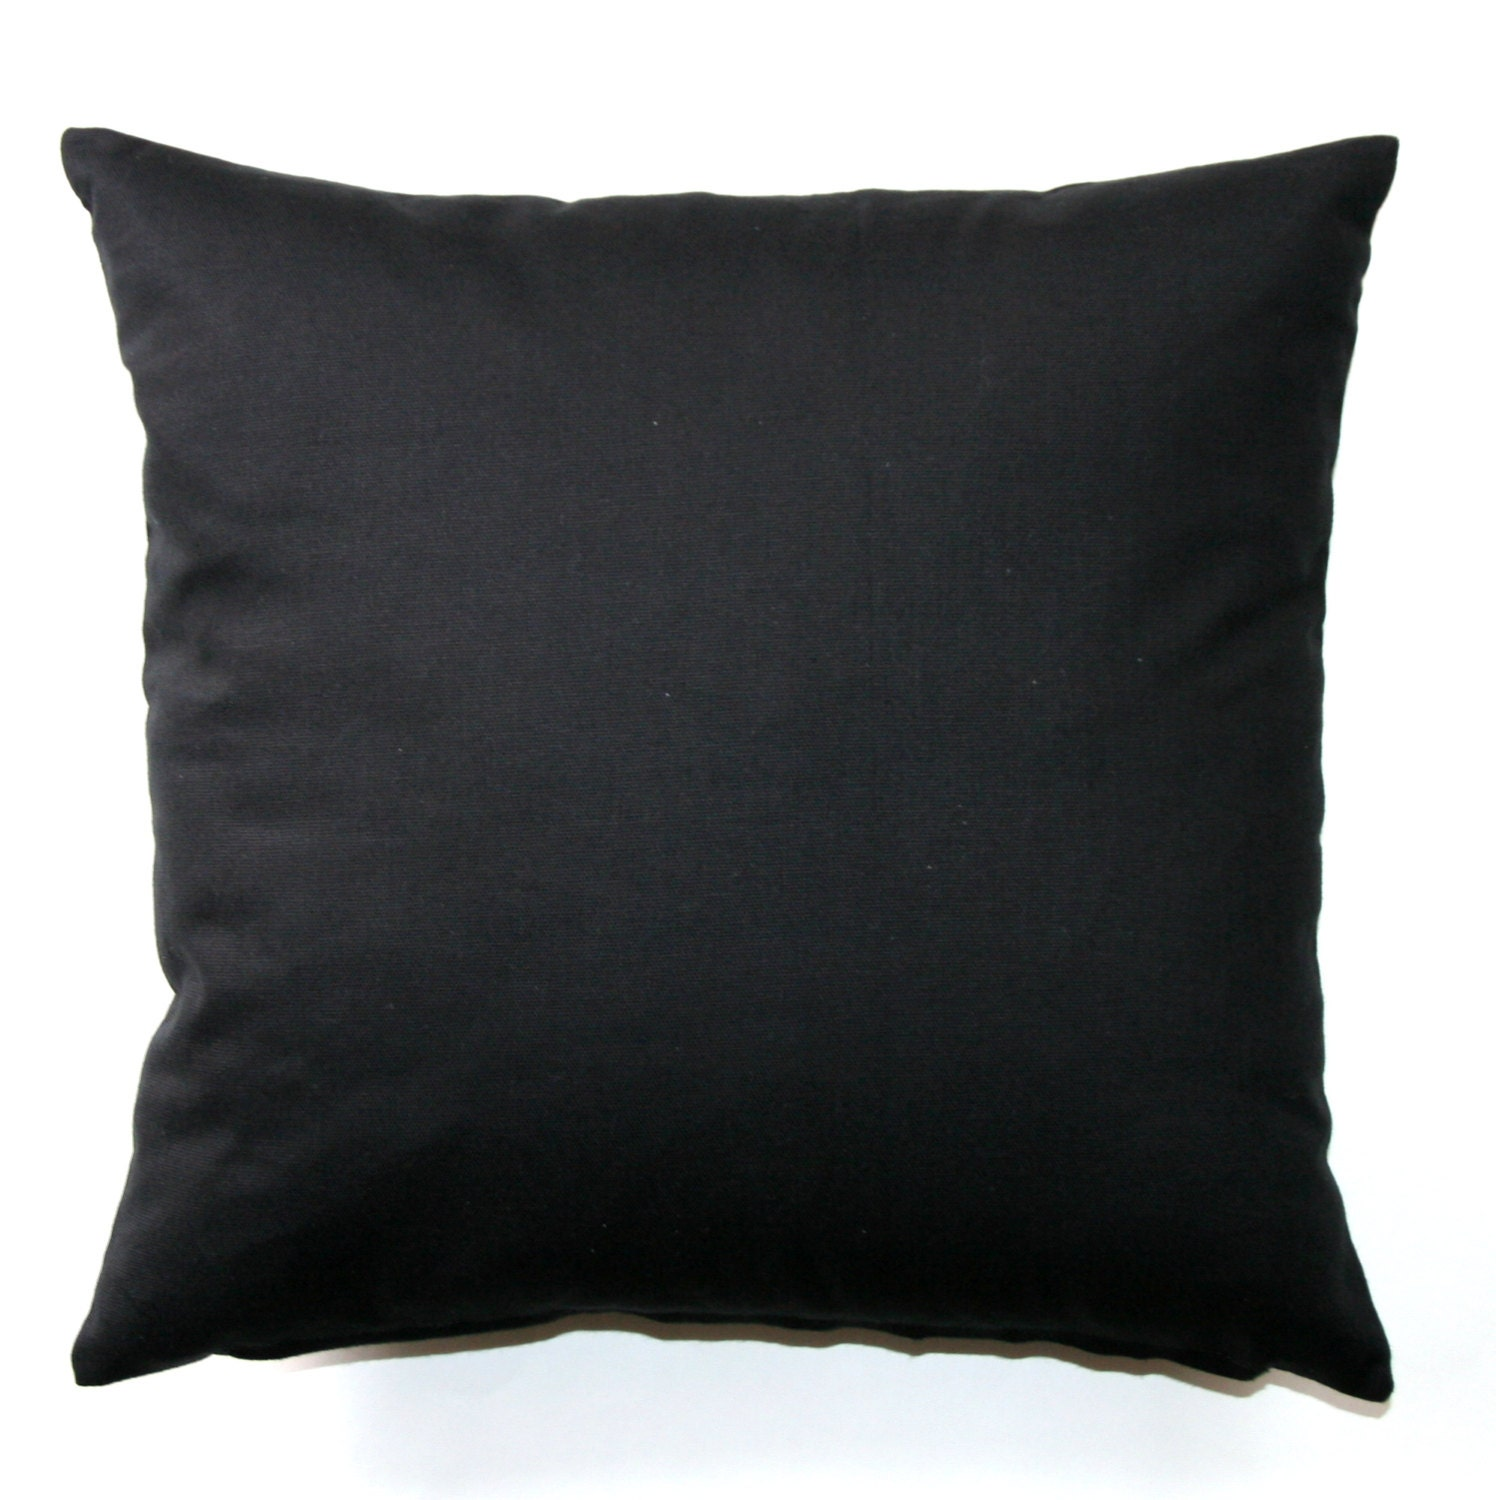 Solid Throw Pillows Solid Black Pillow Cover Zippered